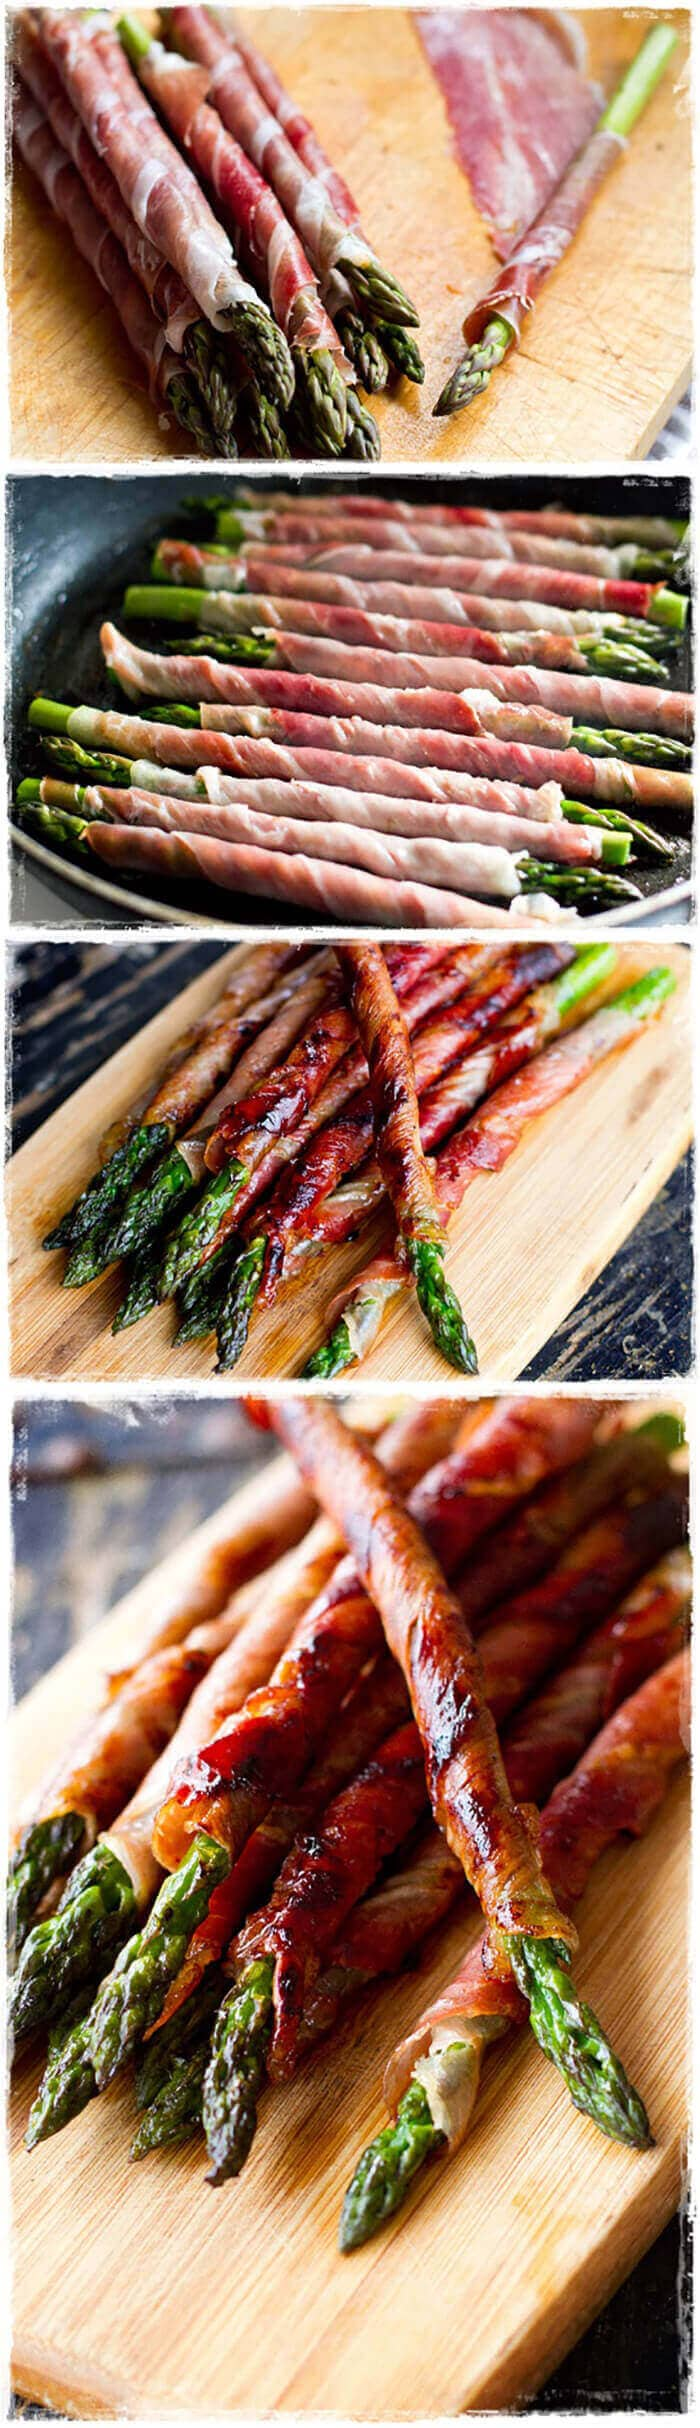 Prosciutto Wrapped Asparagus-easter side dishes recipes-easter side dishes vegetables-easter side dishes make ahead-easter side dishes recipes veggies-easter side dishes recipes simple